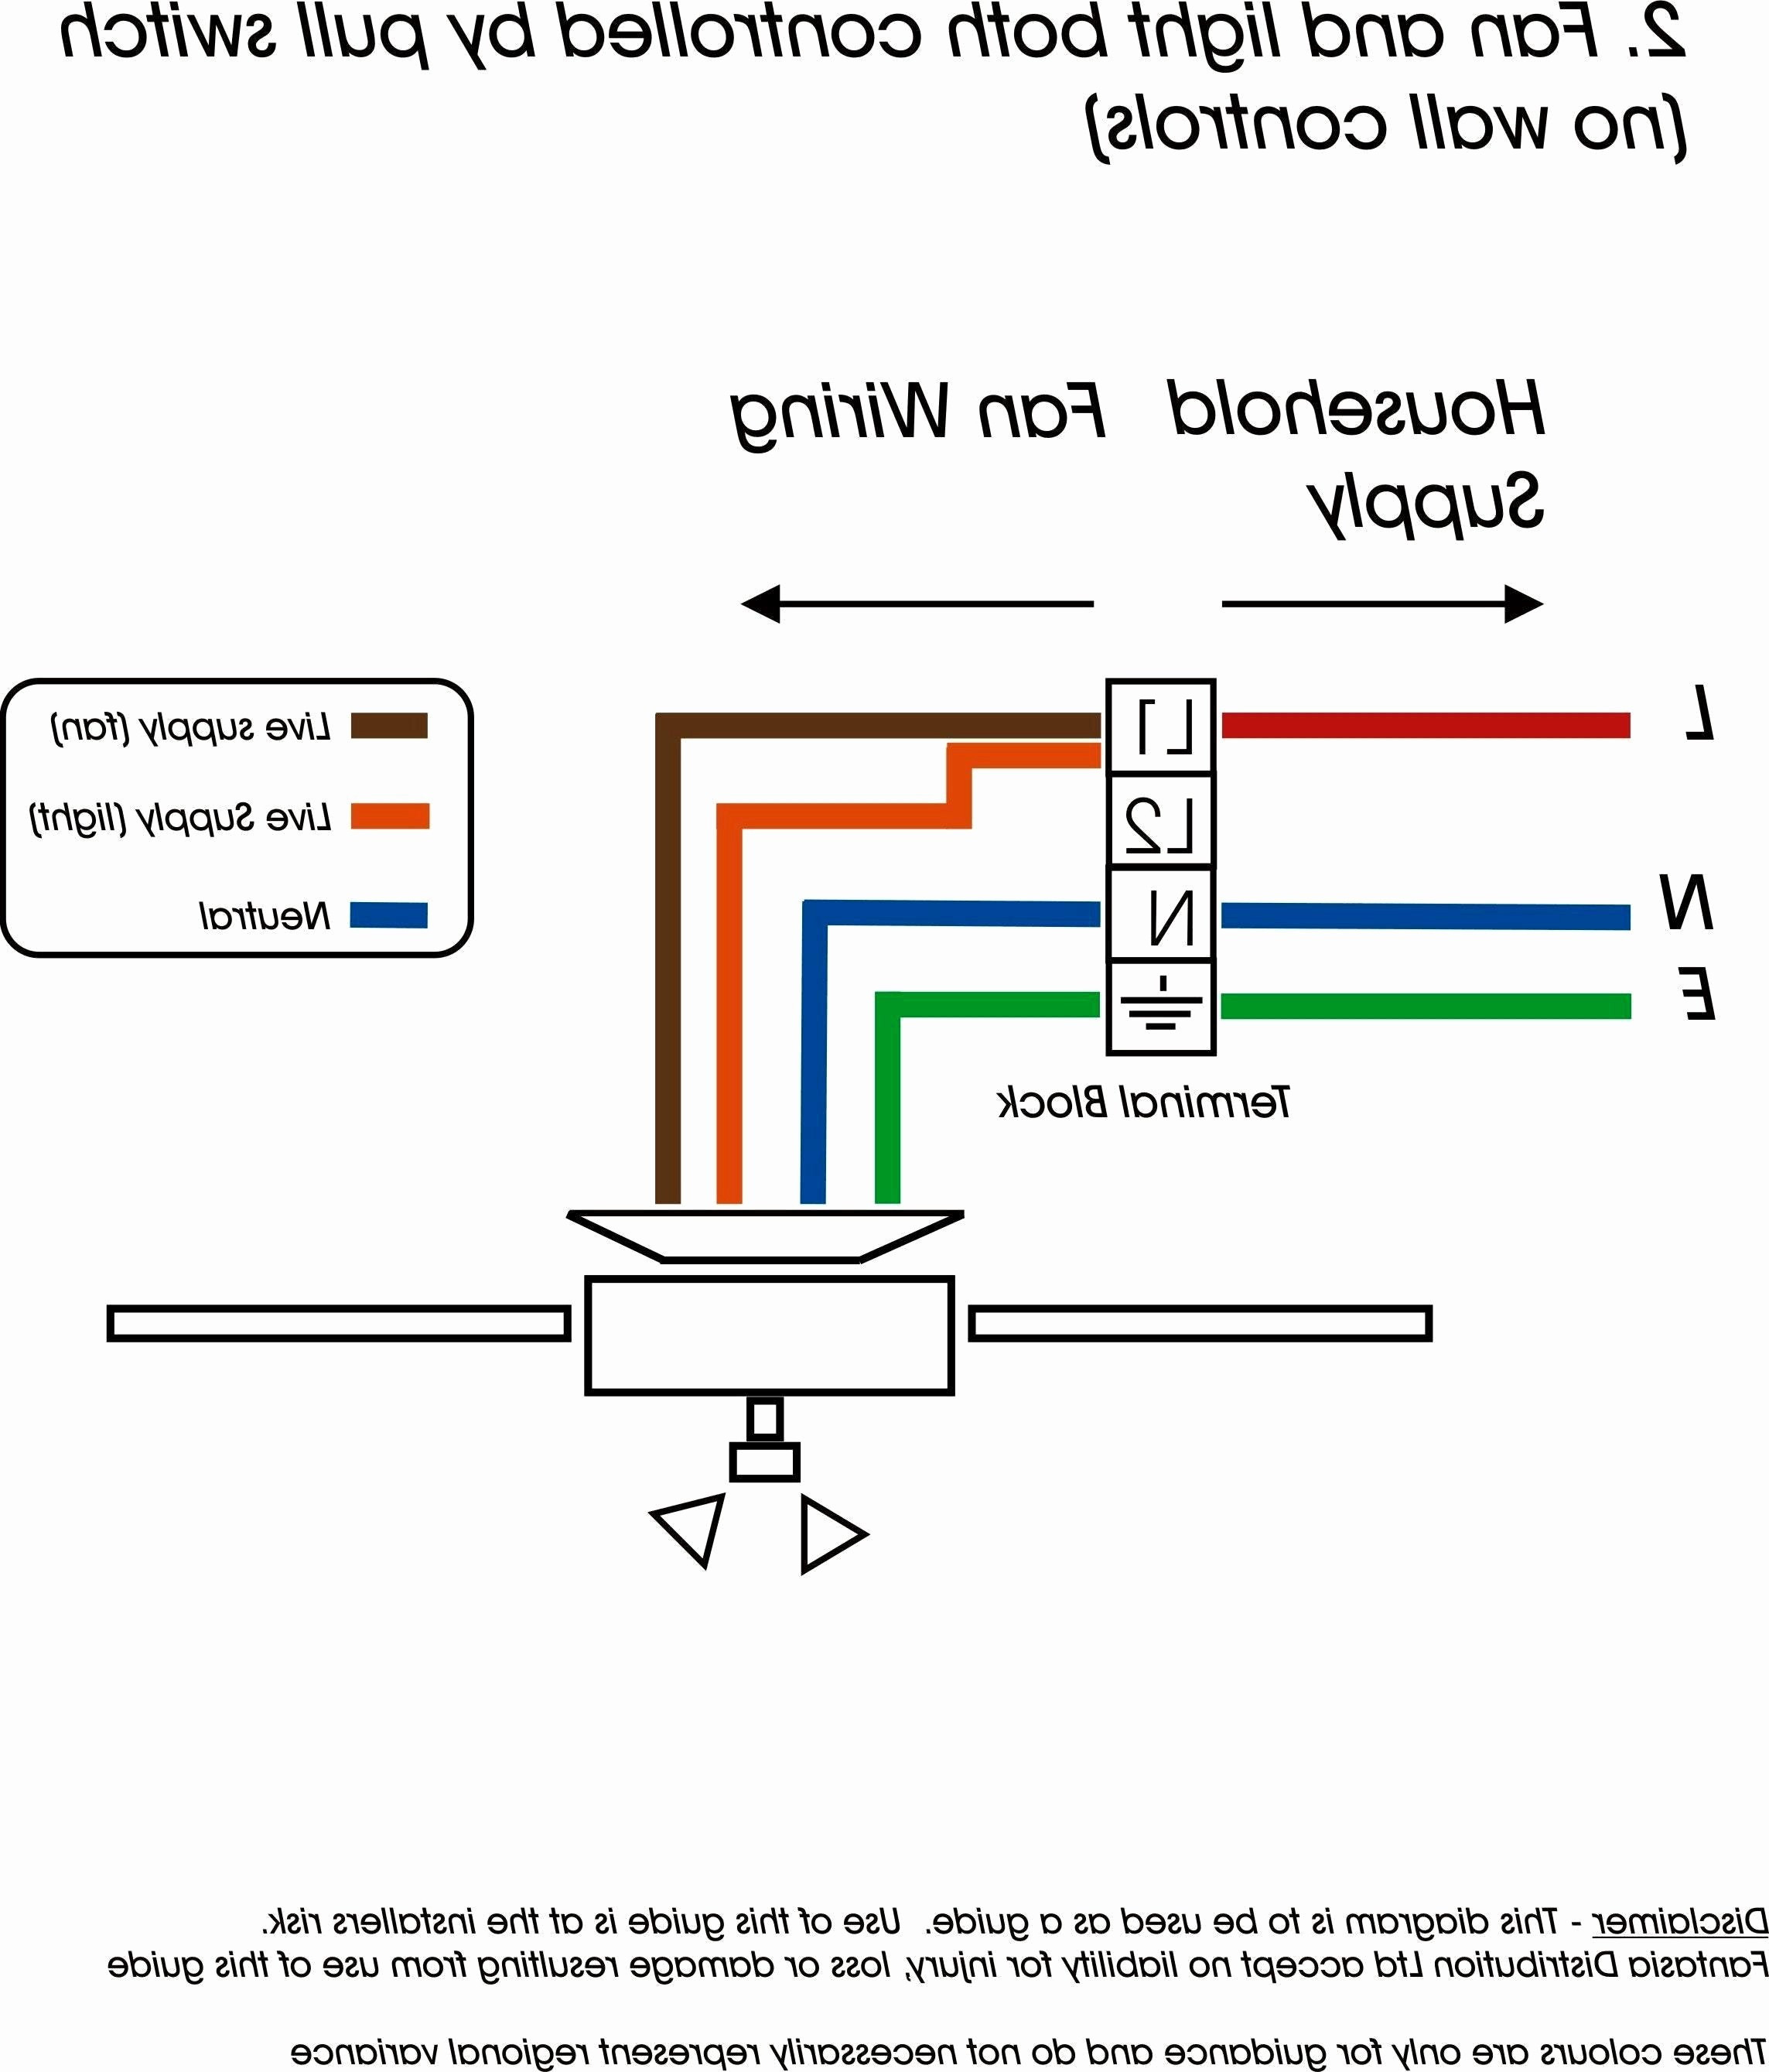 Generator Automatic Transfer Switch Wiring Diagram Sample Pdf Wiring - Generator Automatic Transfer Switch Wiring Diagram